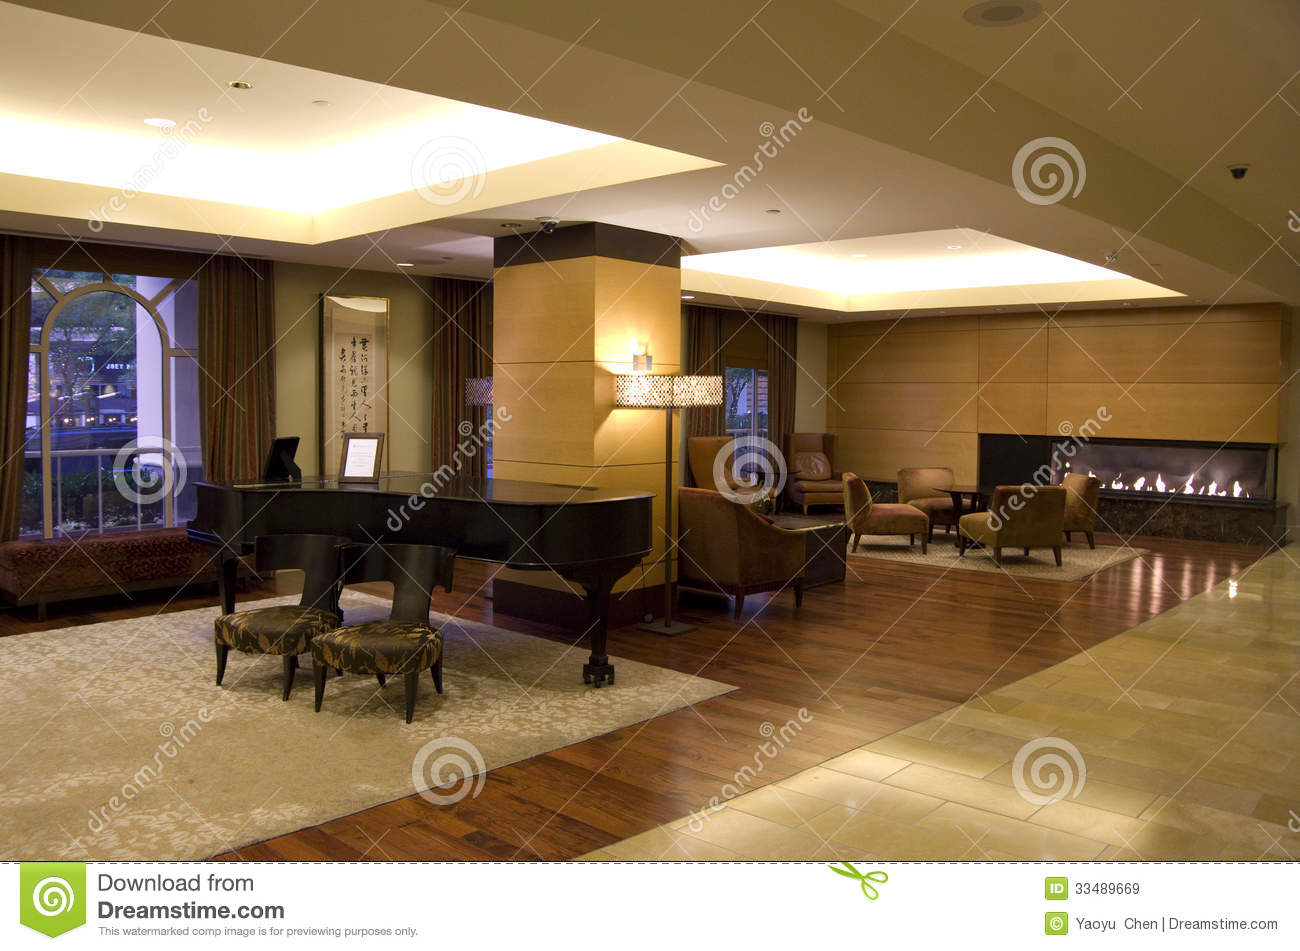 Luxury Hotel Lobby Editorial Stock Image - Image: 33489669